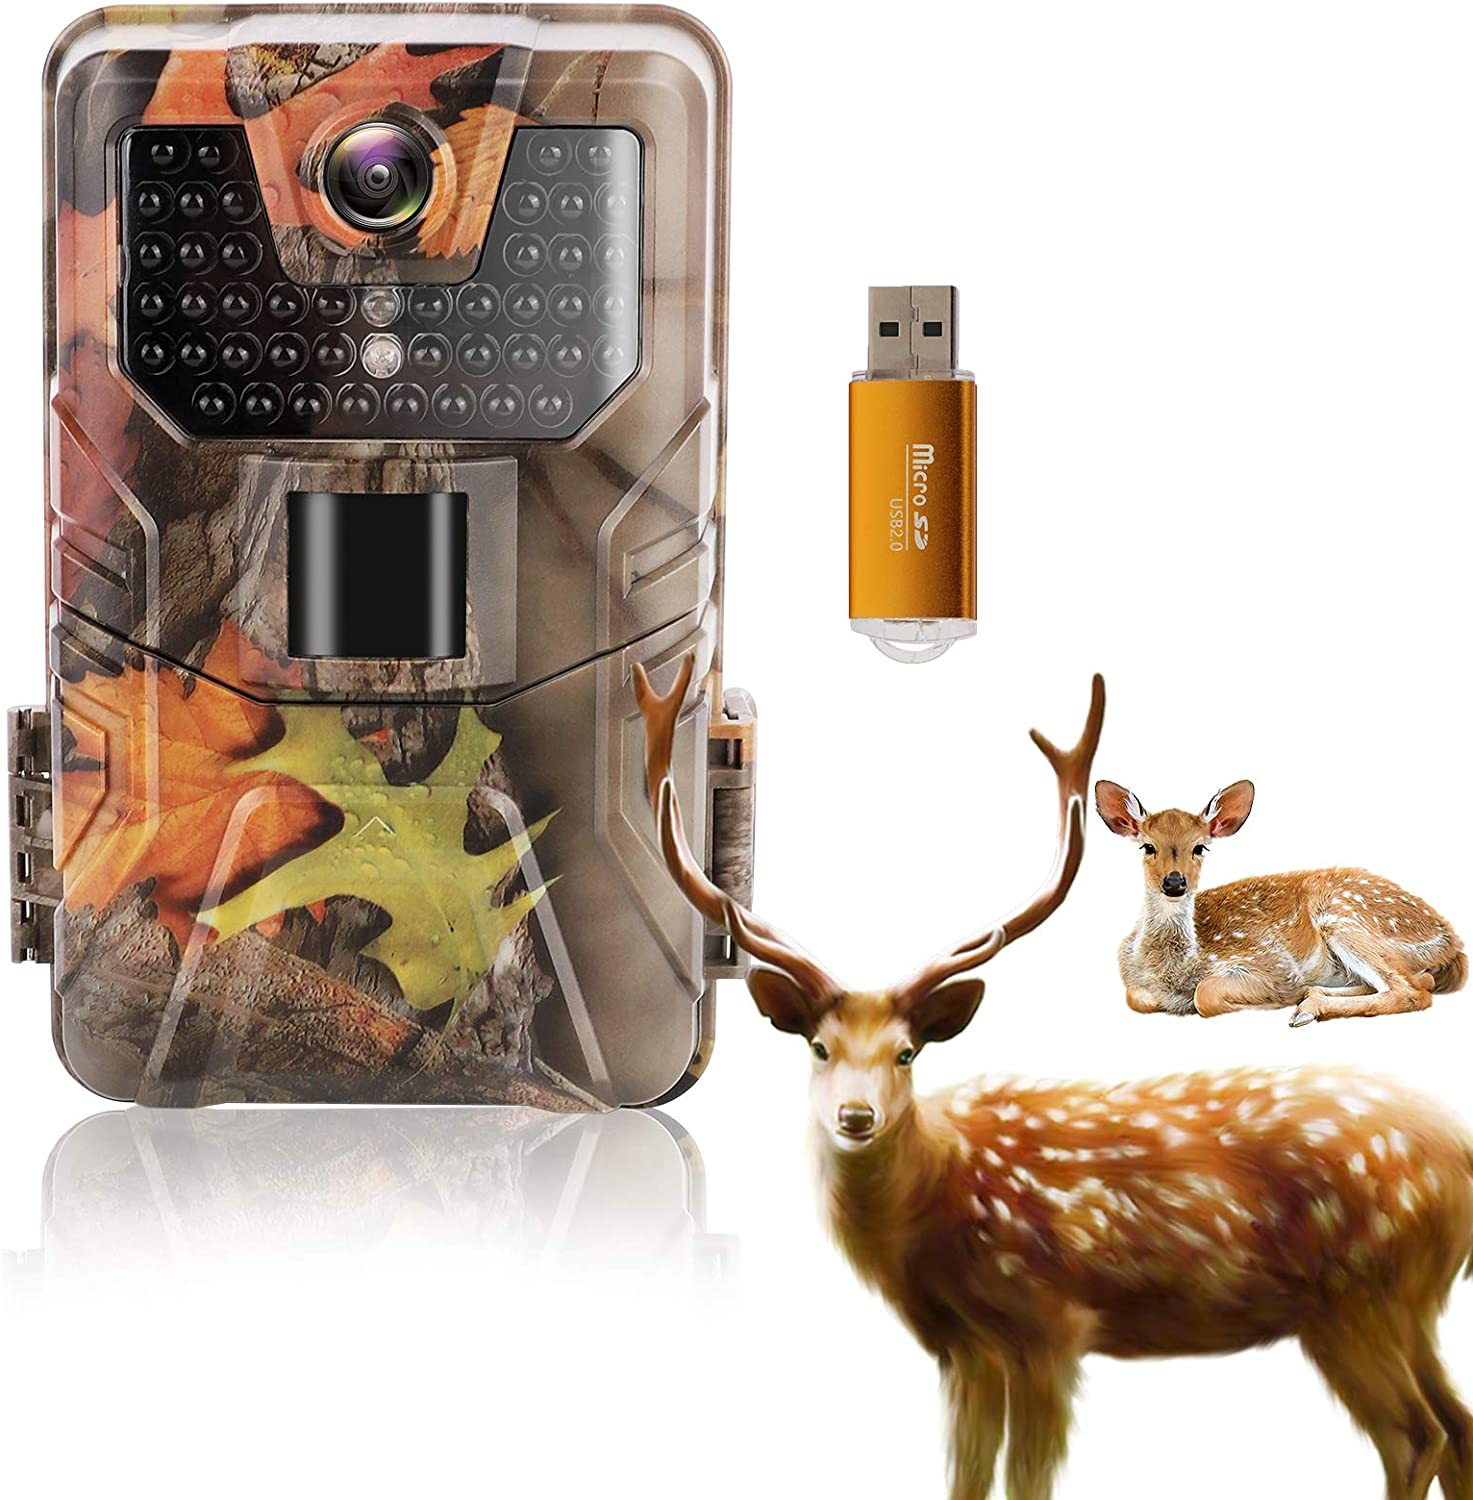 LByzHan Trail Game Camera 36MP 1520P Hunting Cam with USB Night Vision Motion Activated IP67 Waterproof 120° Detecting Range 2.0